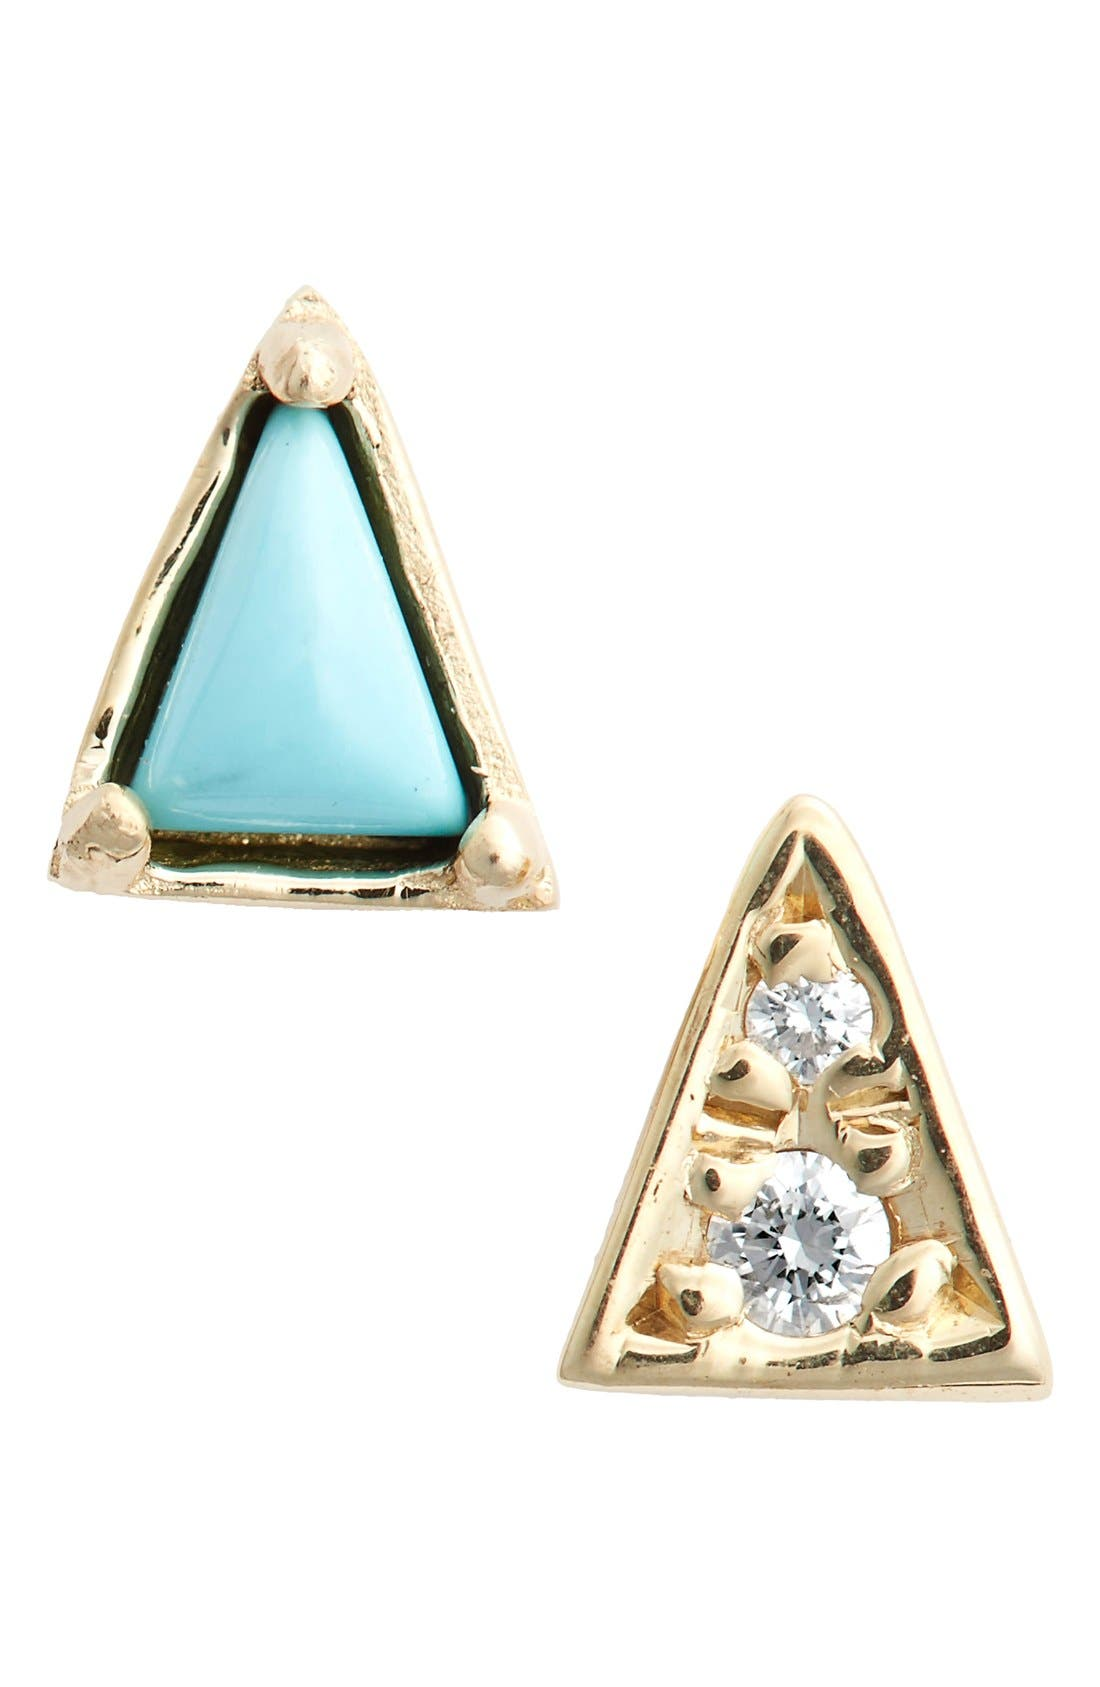 Mismatch Triangle Turquoise Stud Earrings,                             Main thumbnail 1, color,                             Yellow Gold